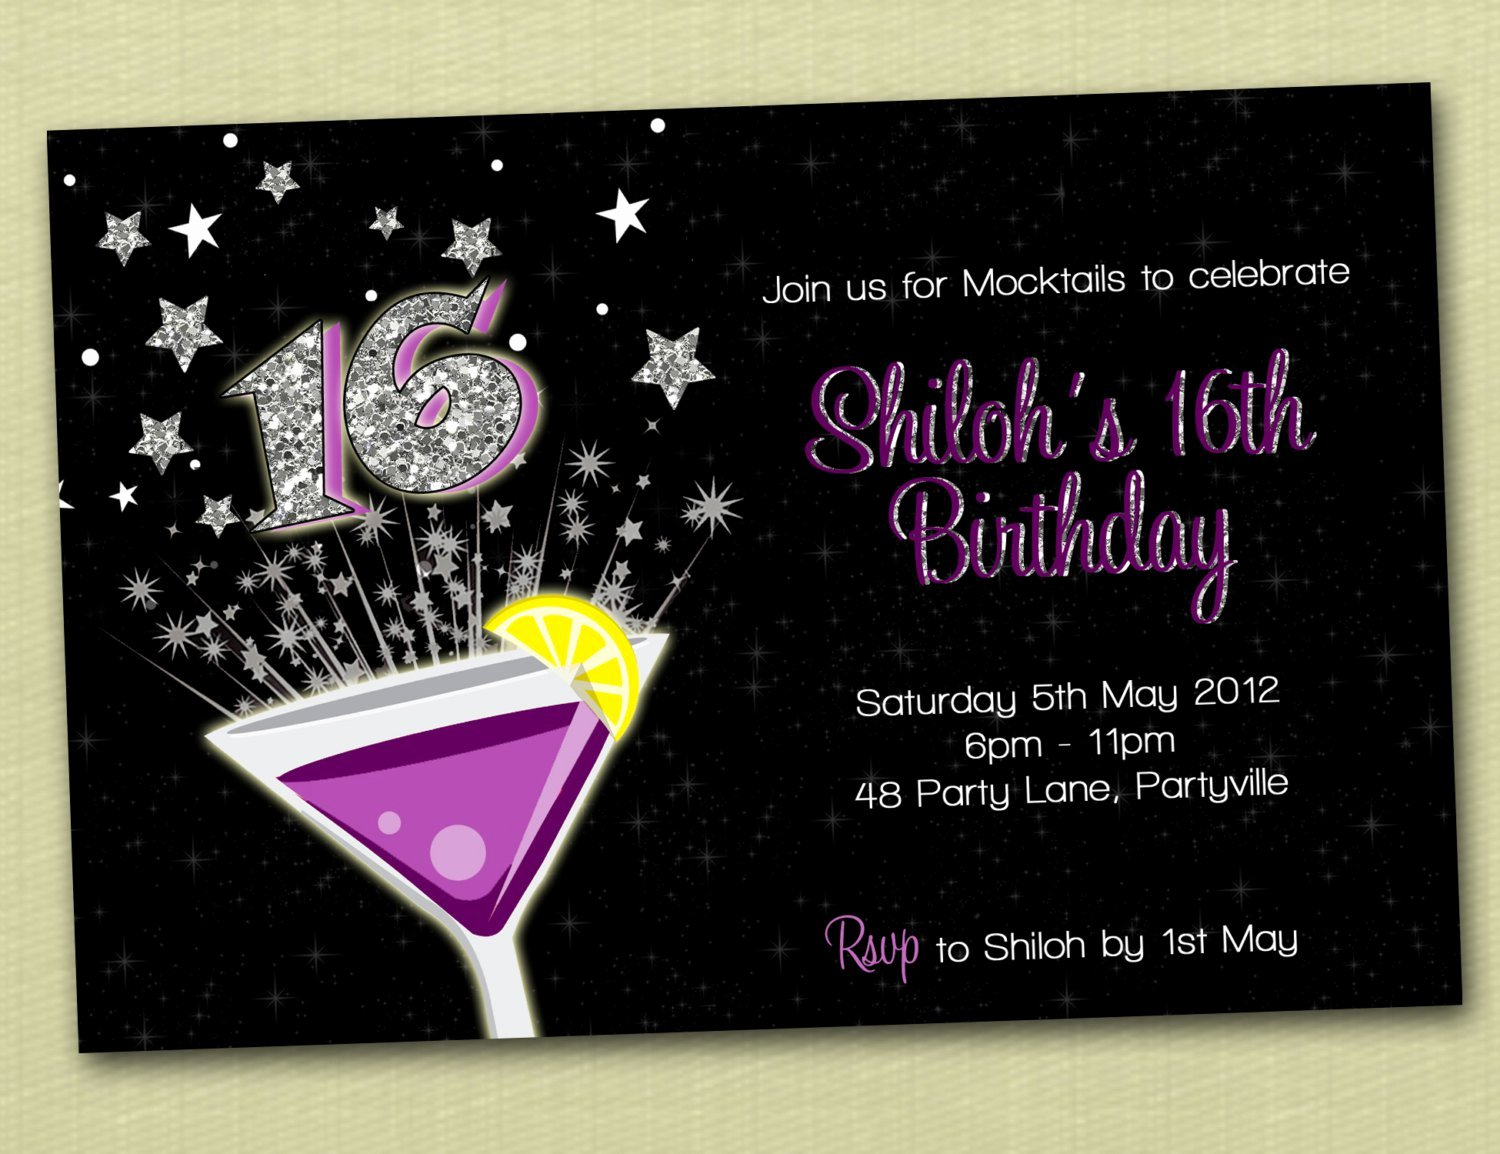 16th Birthday Invitation Templates Free Lovely Boys 16th Birthday Invitations